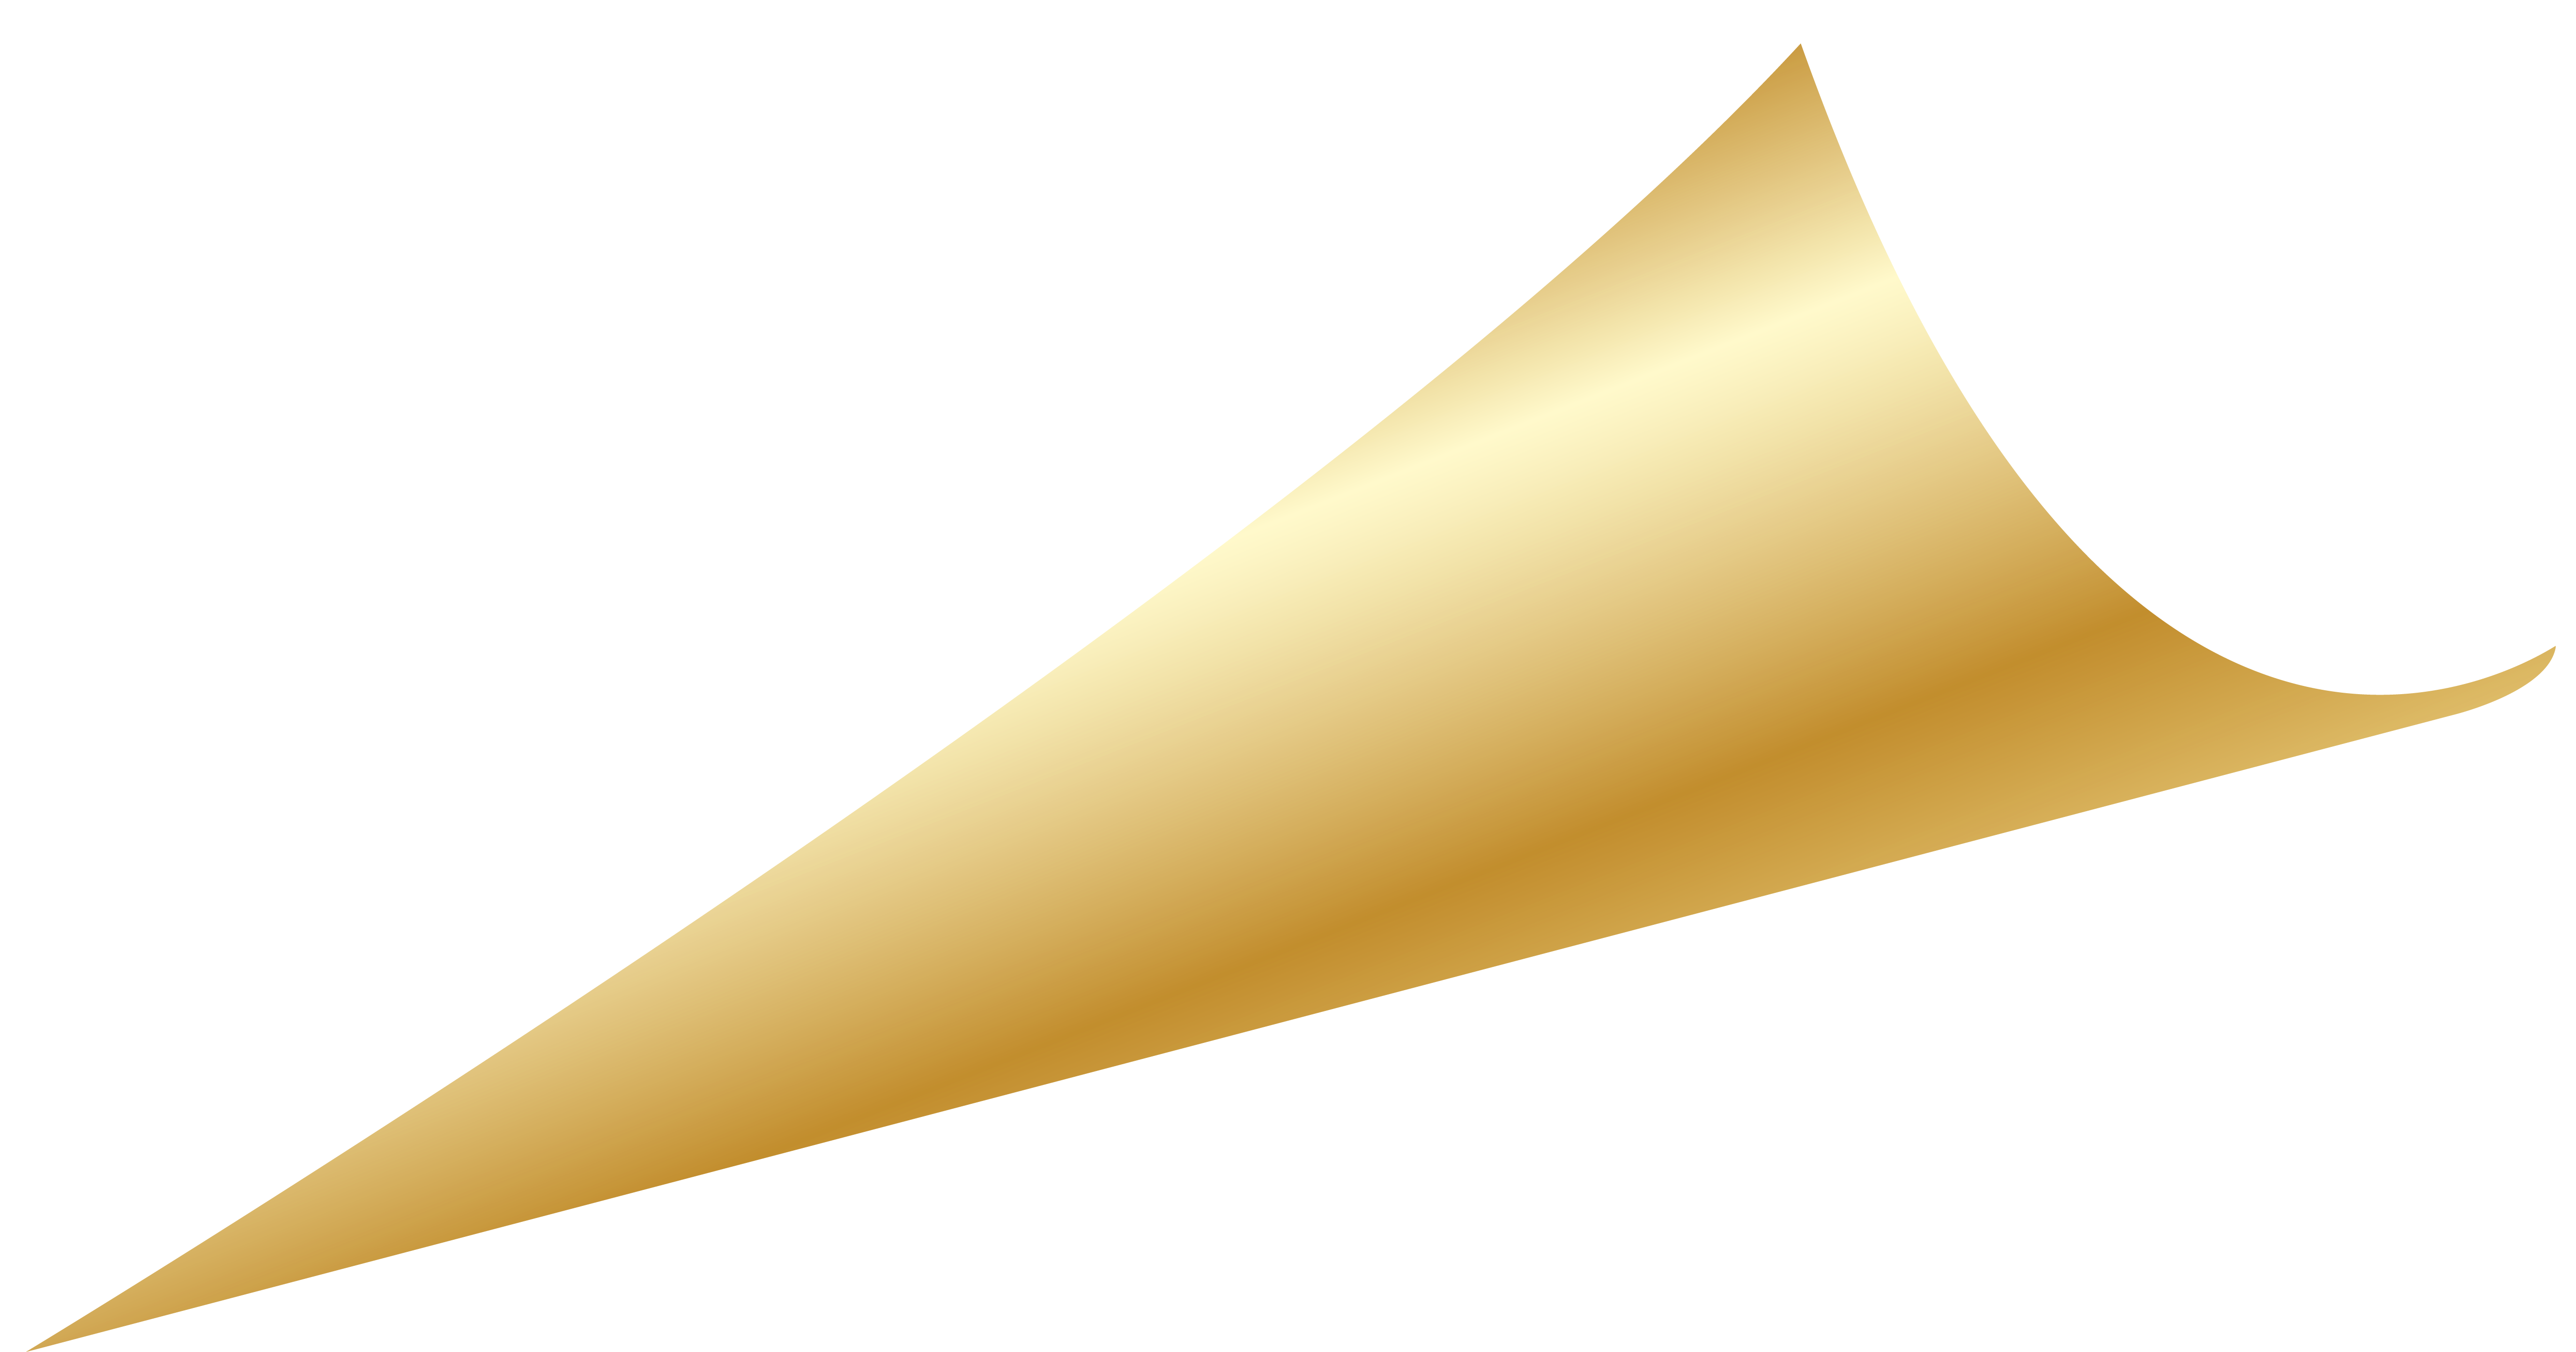 Gold PNG Image